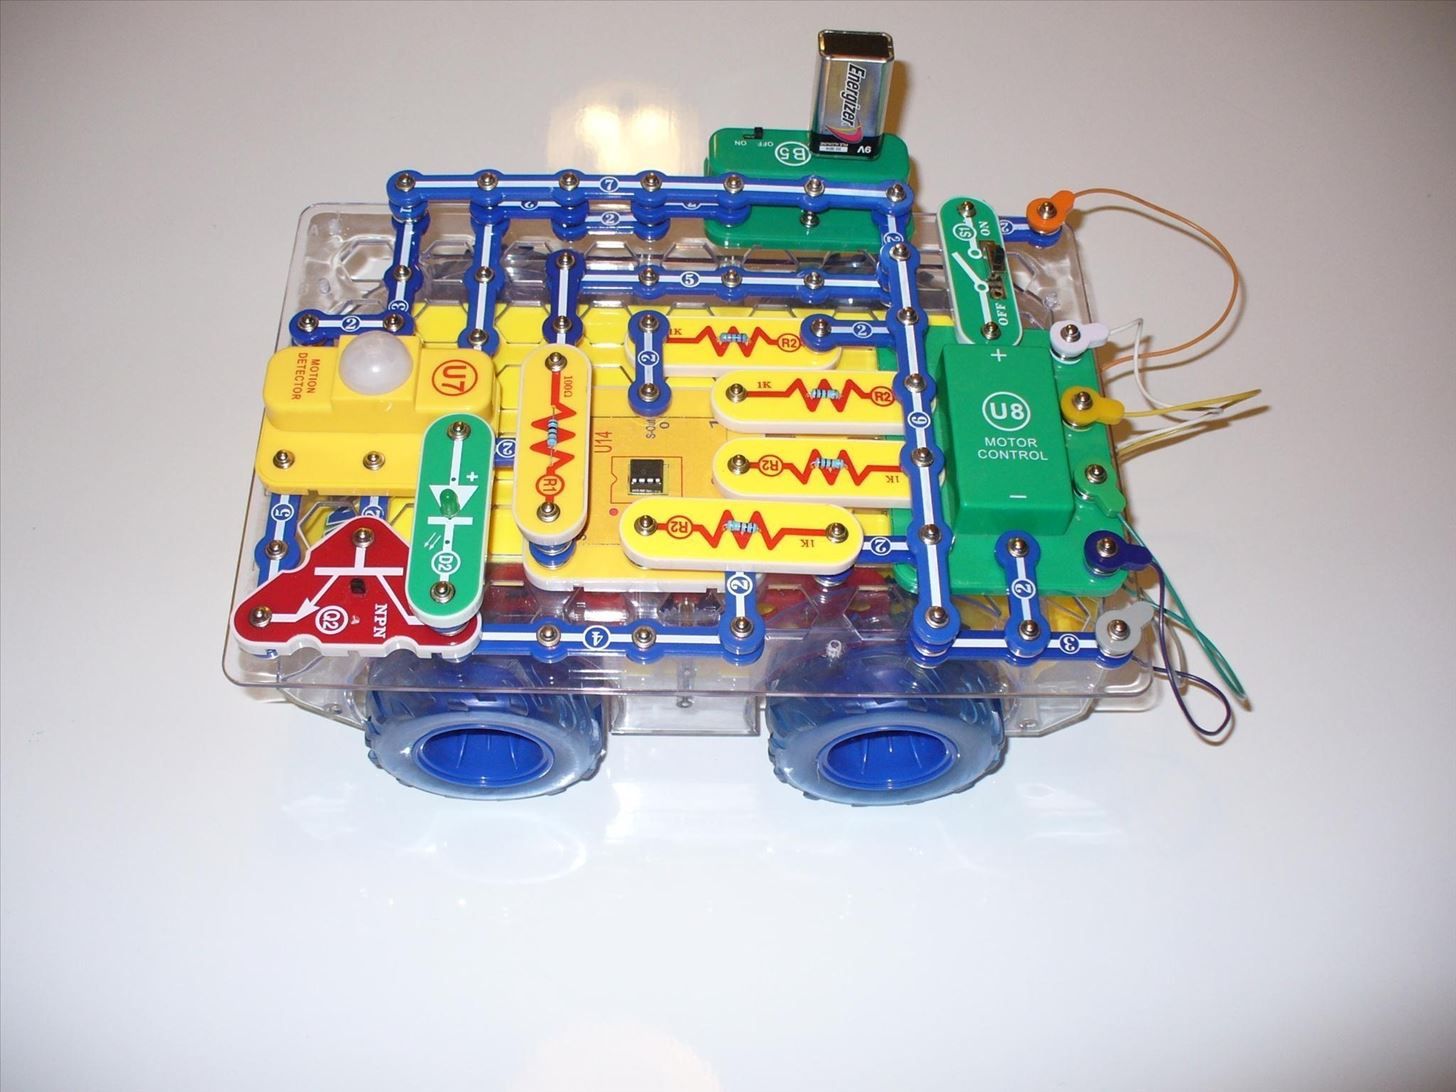 How to Build a Programmable Robot with Snap Circuits